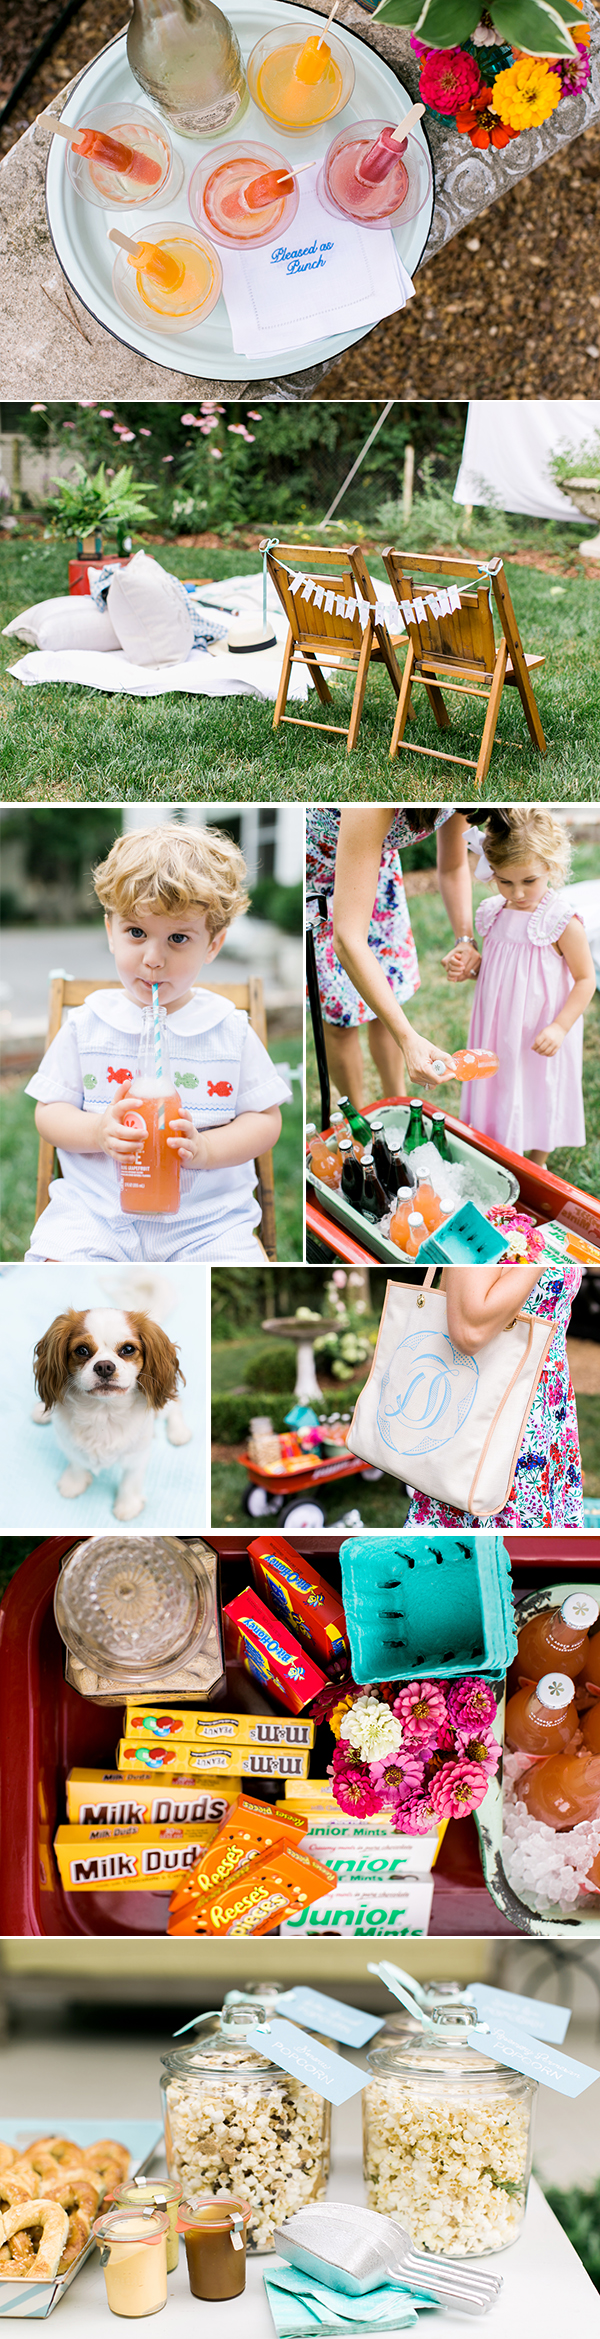 Backyard Movie Birthday Party Ideas